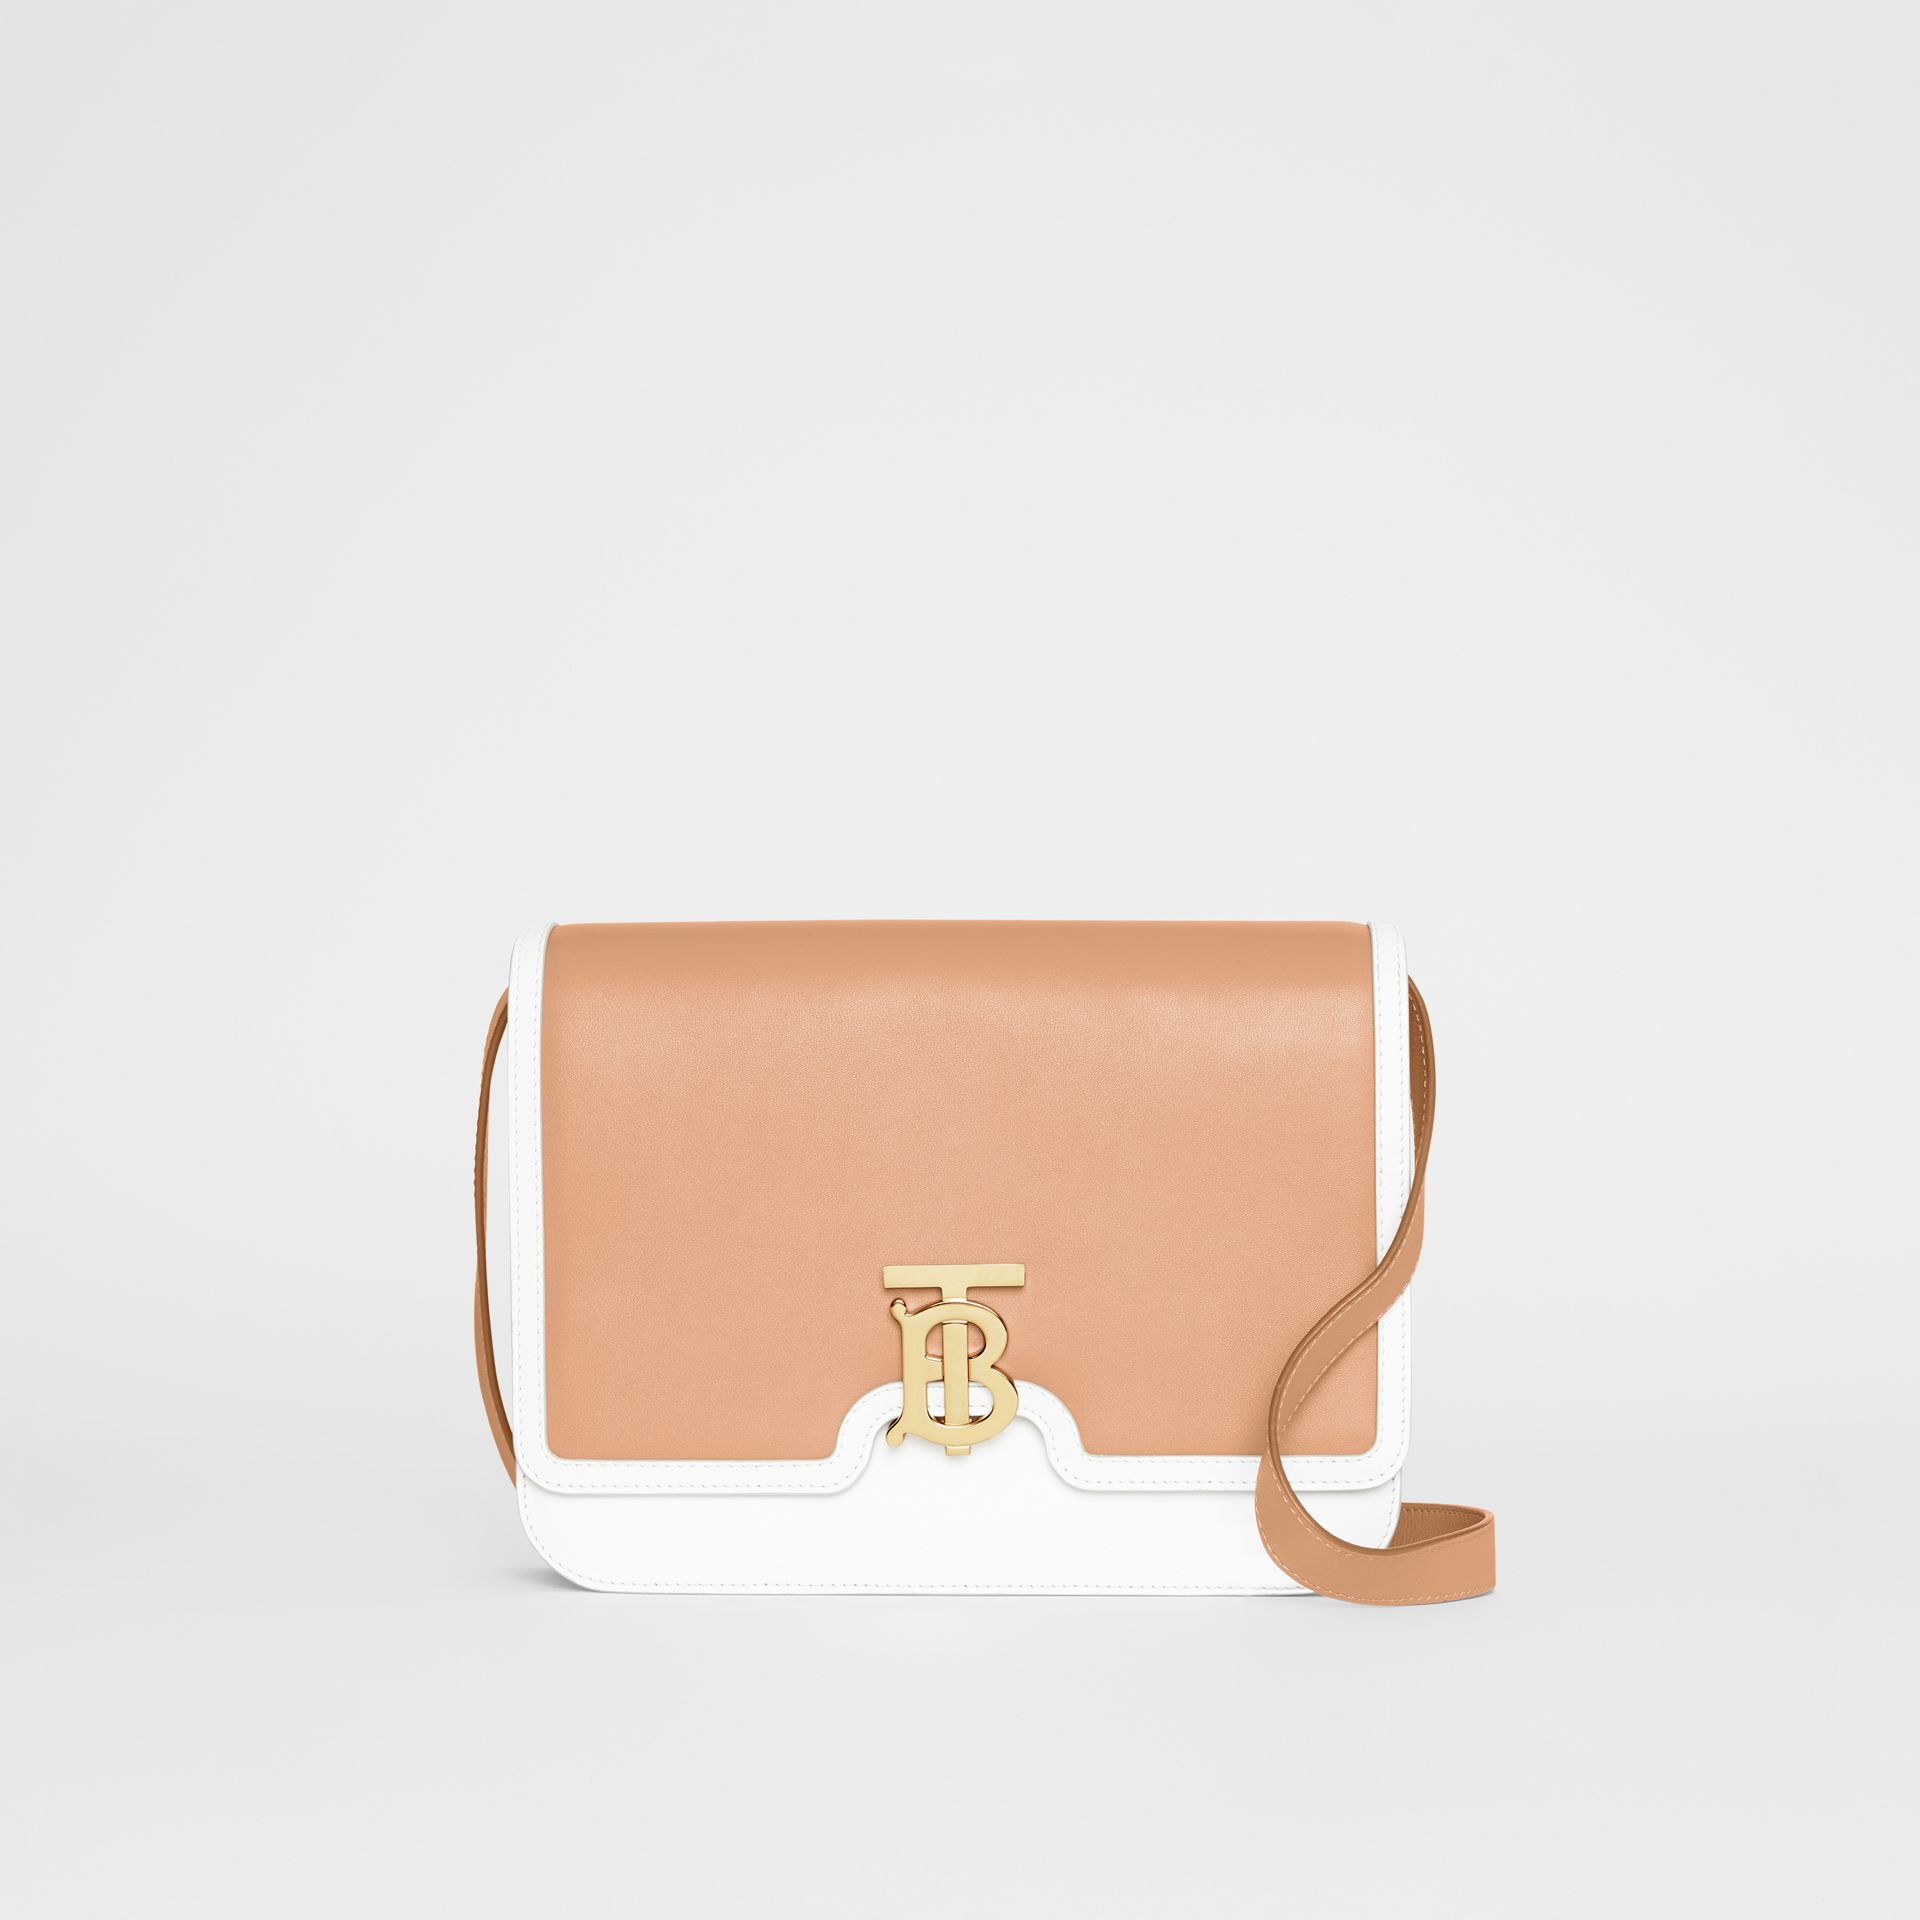 Medium Two-tone Leather TB Bag in Chalk White/light Camel - Women | Burberry - gallery image 0